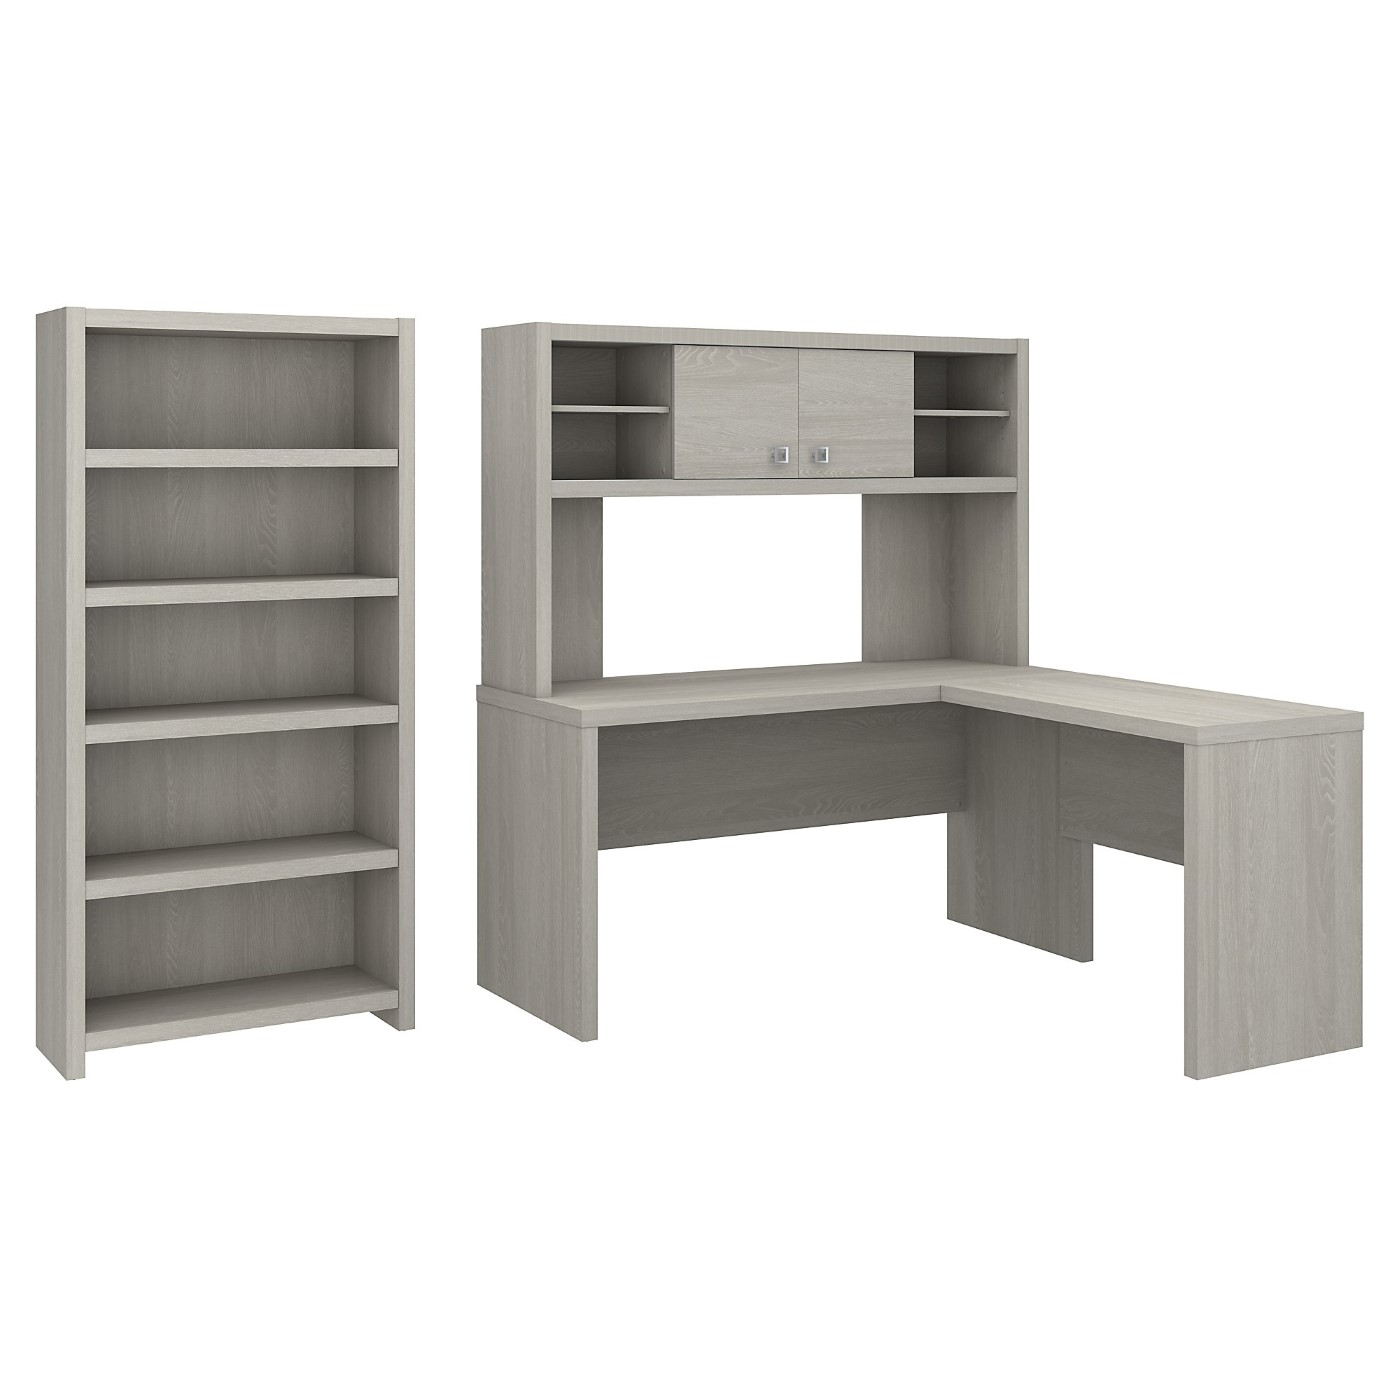 </b></font><b>The kathy ireland� Echo L Shaped Desk with Hutch and 5 Shelf Bookcase is Sustainable Eco Friendly Furniture. Includes Free Shipping! 30H x 72L x 72W</b></font>  VIDEO BELOW. <p>RATING:&#11088;&#11088;&#11088;&#11088;&#11088;</b></font></b>